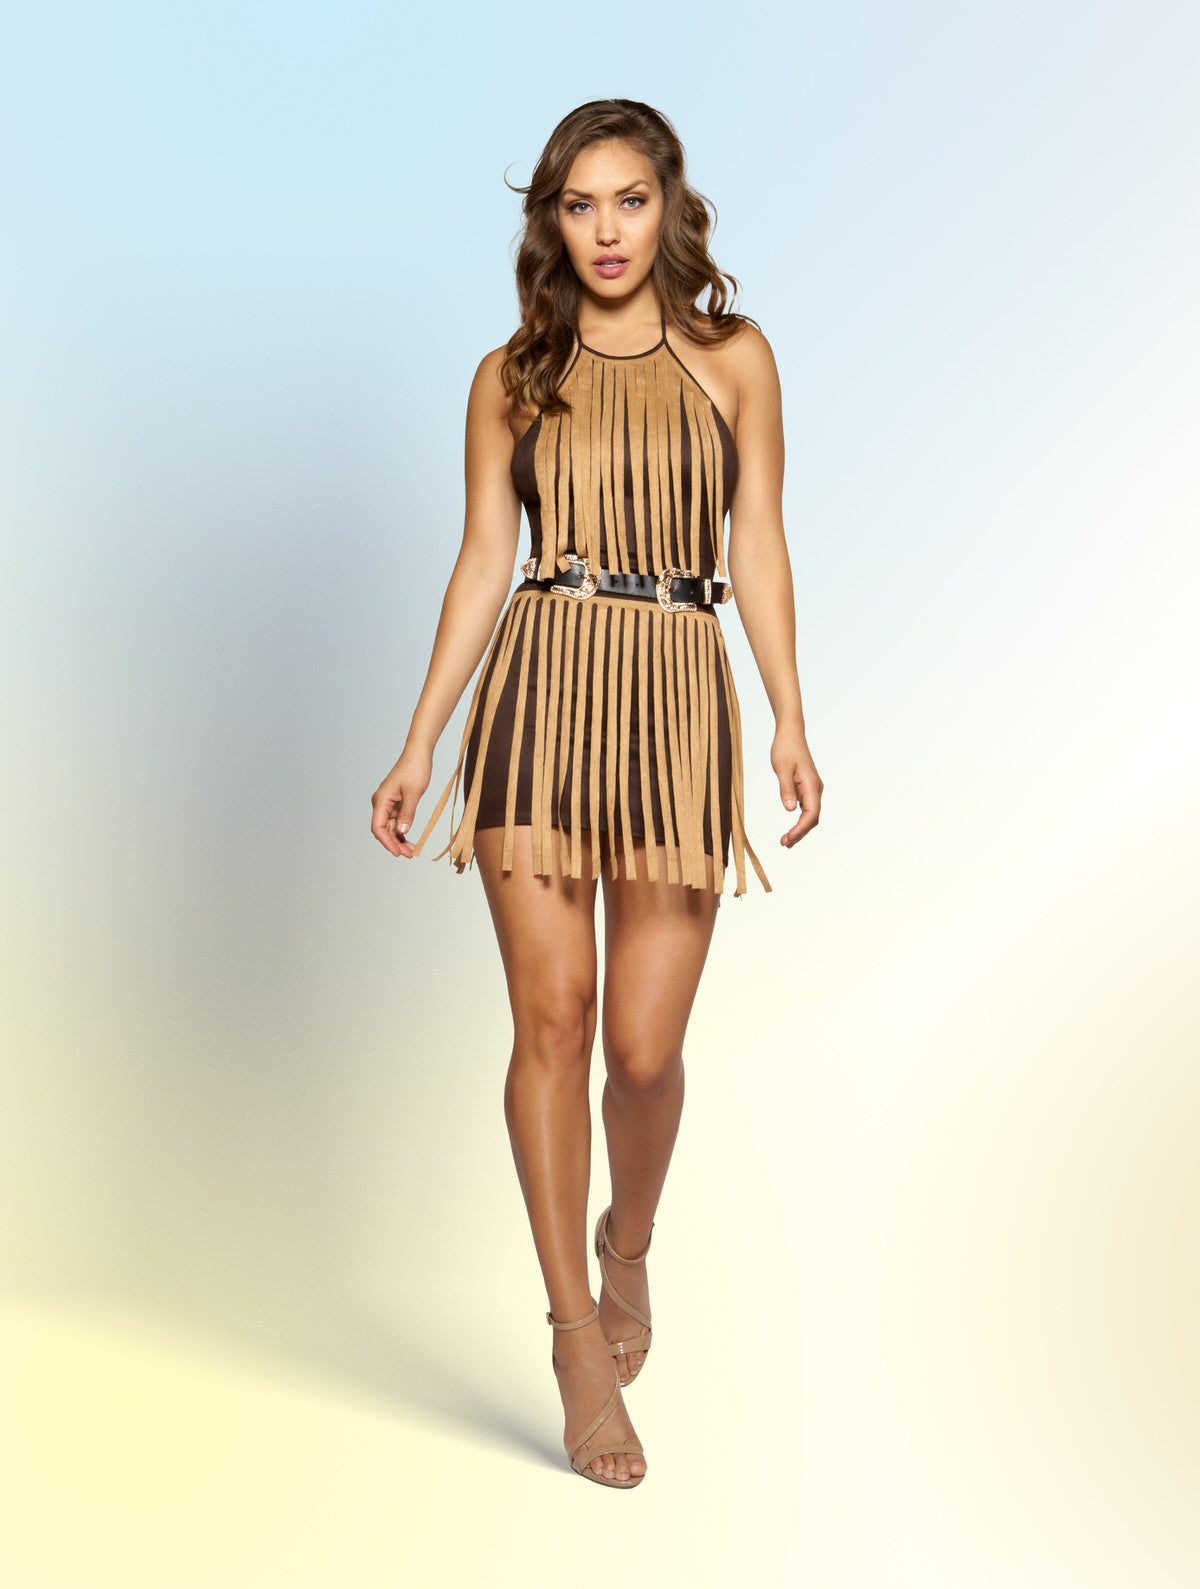 3357 - Suede Dress with Fringe Detail ${description} | Roma Costume and Roma Confidential wholesale manufacturer of Women Apparel bulk world wide wholesale and world wide drop ship services for Adult Halloween Costumes, Sexy and Elegant Lingerie, Rave Clothing, Club wear, and Christmas Costumes. Mini Dresses, Roma Costume, Inc., Roma Costume, Roma Confidential, Wholesale clothing, drop ship, drop ship service, Wholesale Lingerie, Wholesale Adult Halloween Costumes, Rave Clothing, EDM Clothing, Festival Wear, Christmas Costumes, Clubwear, Club wear.